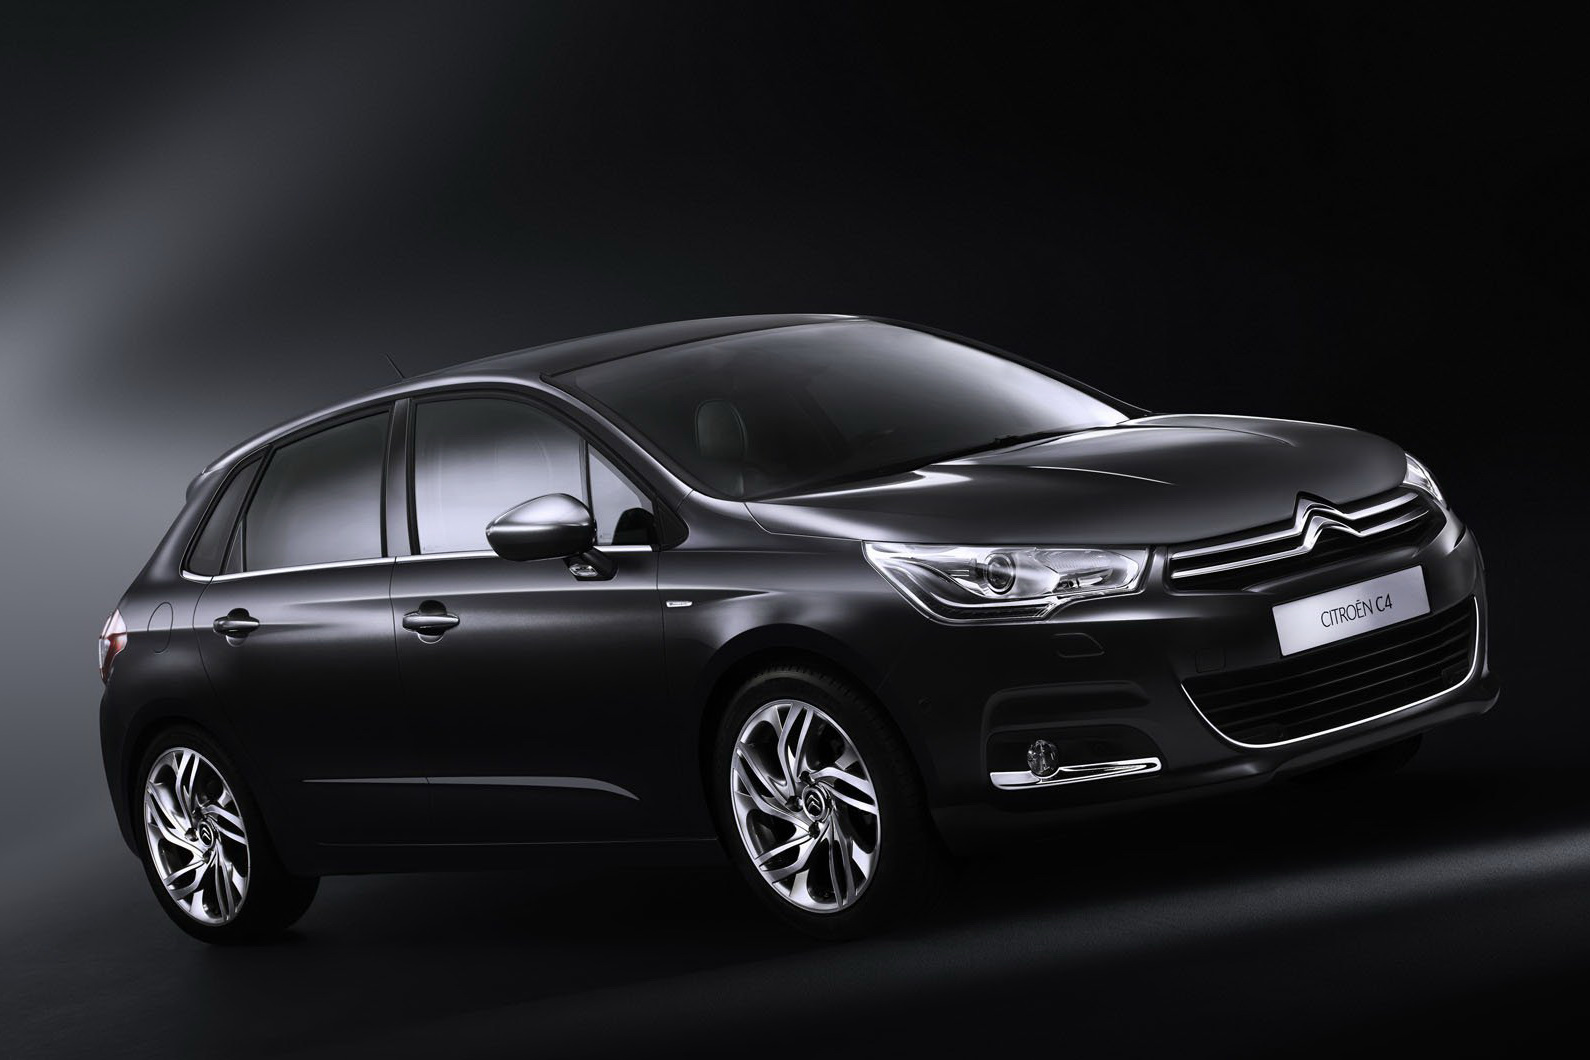 2011 citroen ds4 review new car used car reviews picture. Black Bedroom Furniture Sets. Home Design Ideas